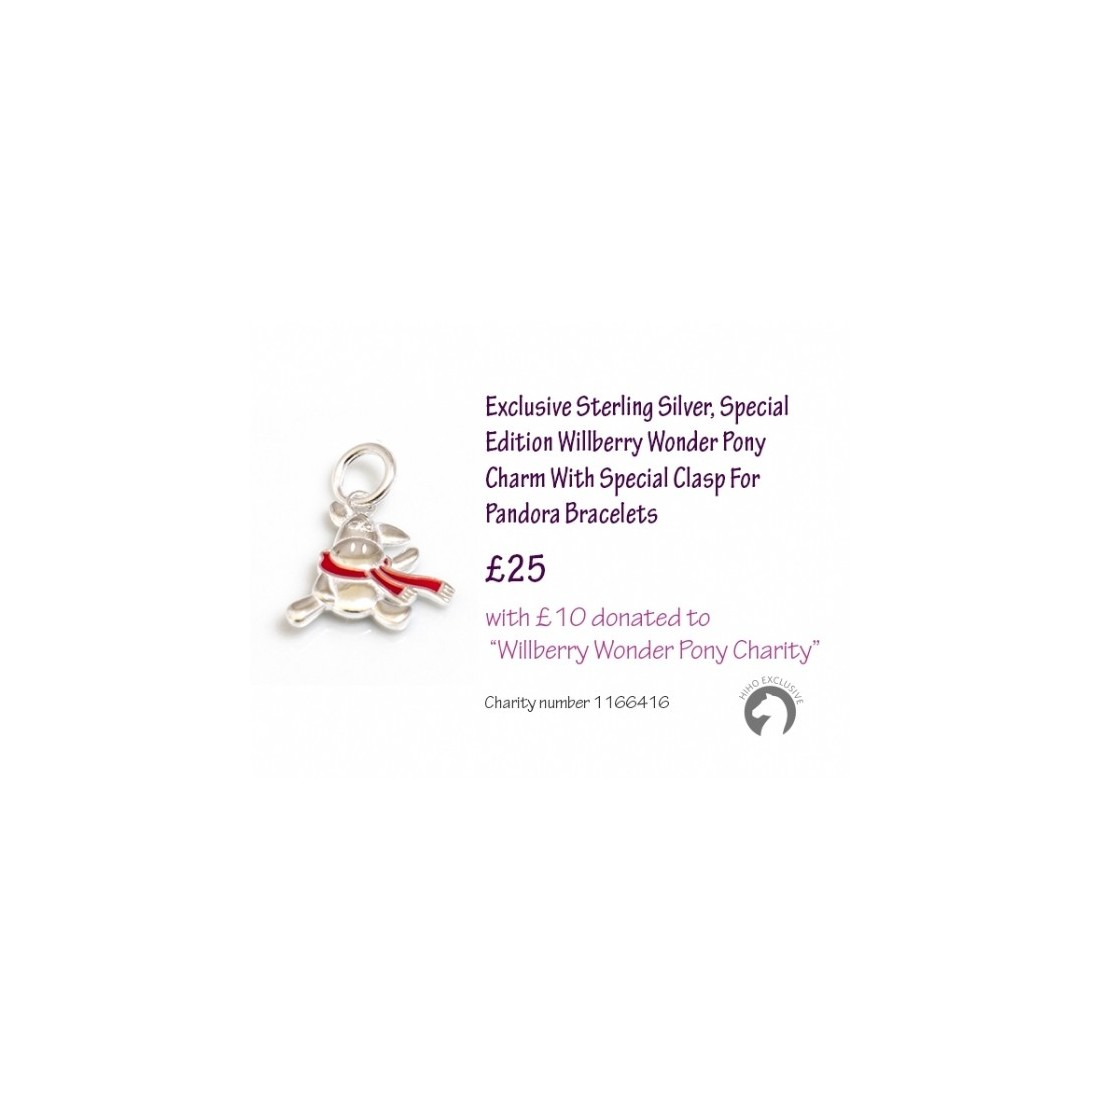 Exclusive Sterling Silver Special Edition Willberry Wonder Pony Charm With Special Clasp For Pandora Bracelets